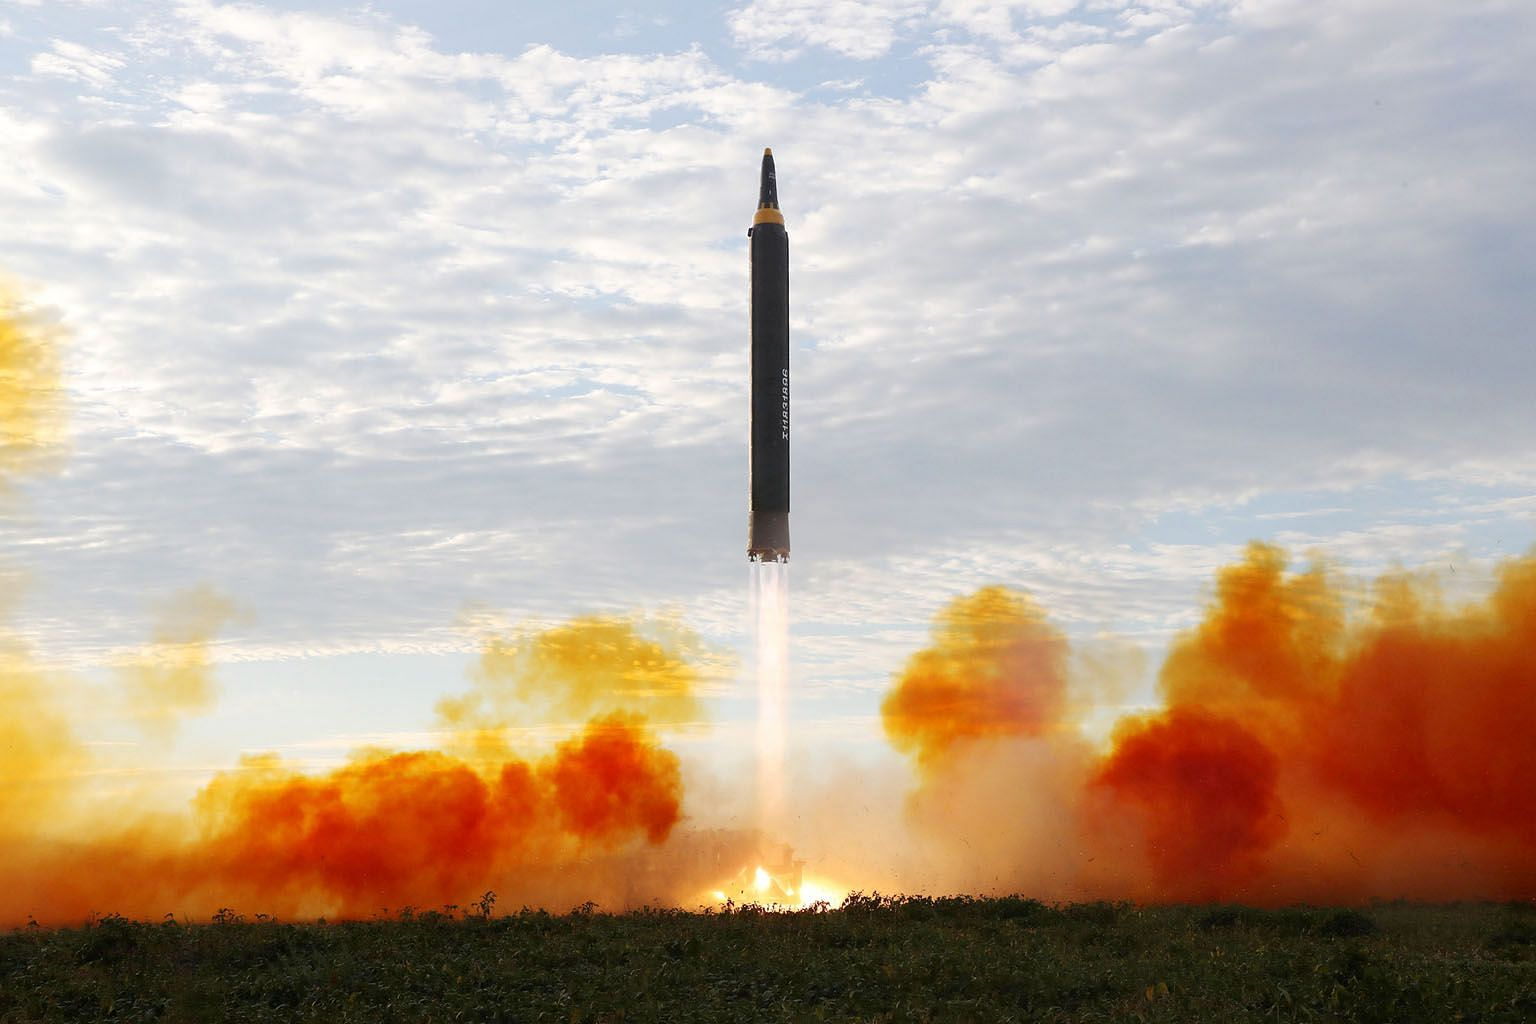 """In recent months, Asean has unequivocally expressed its dismay by stating its """"grave concern"""" over North Korea's ballistic missile tests."""